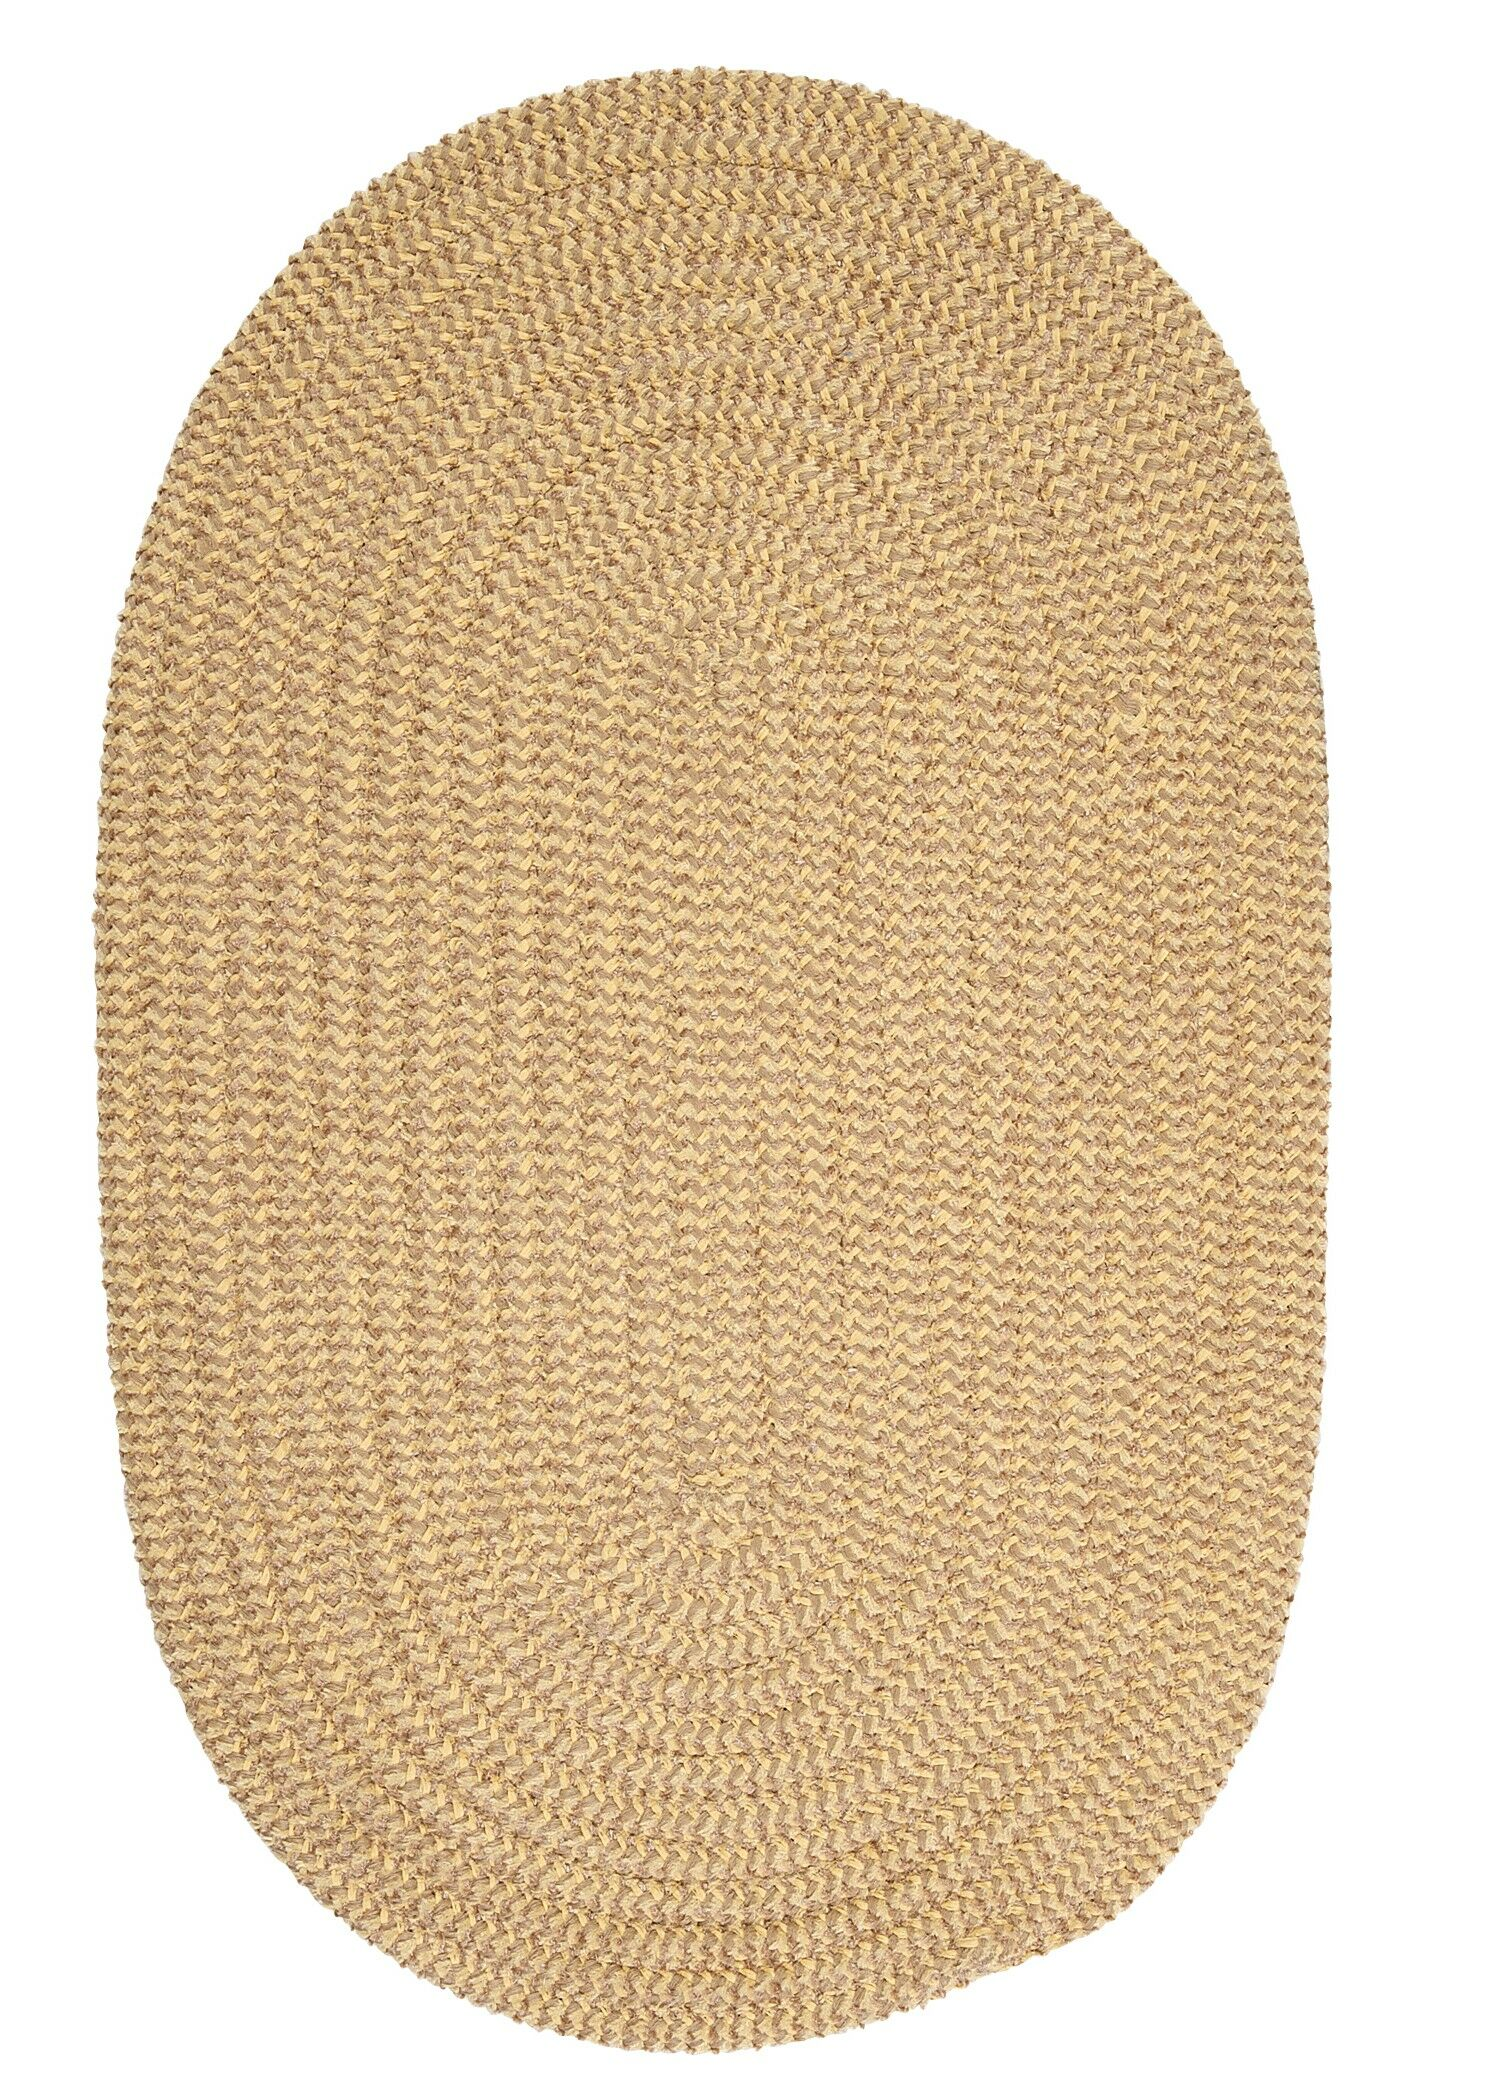 Hale Pale Banana Check Indoor/Outdoor Area Rug Rug Size: Oval 7' x 9'